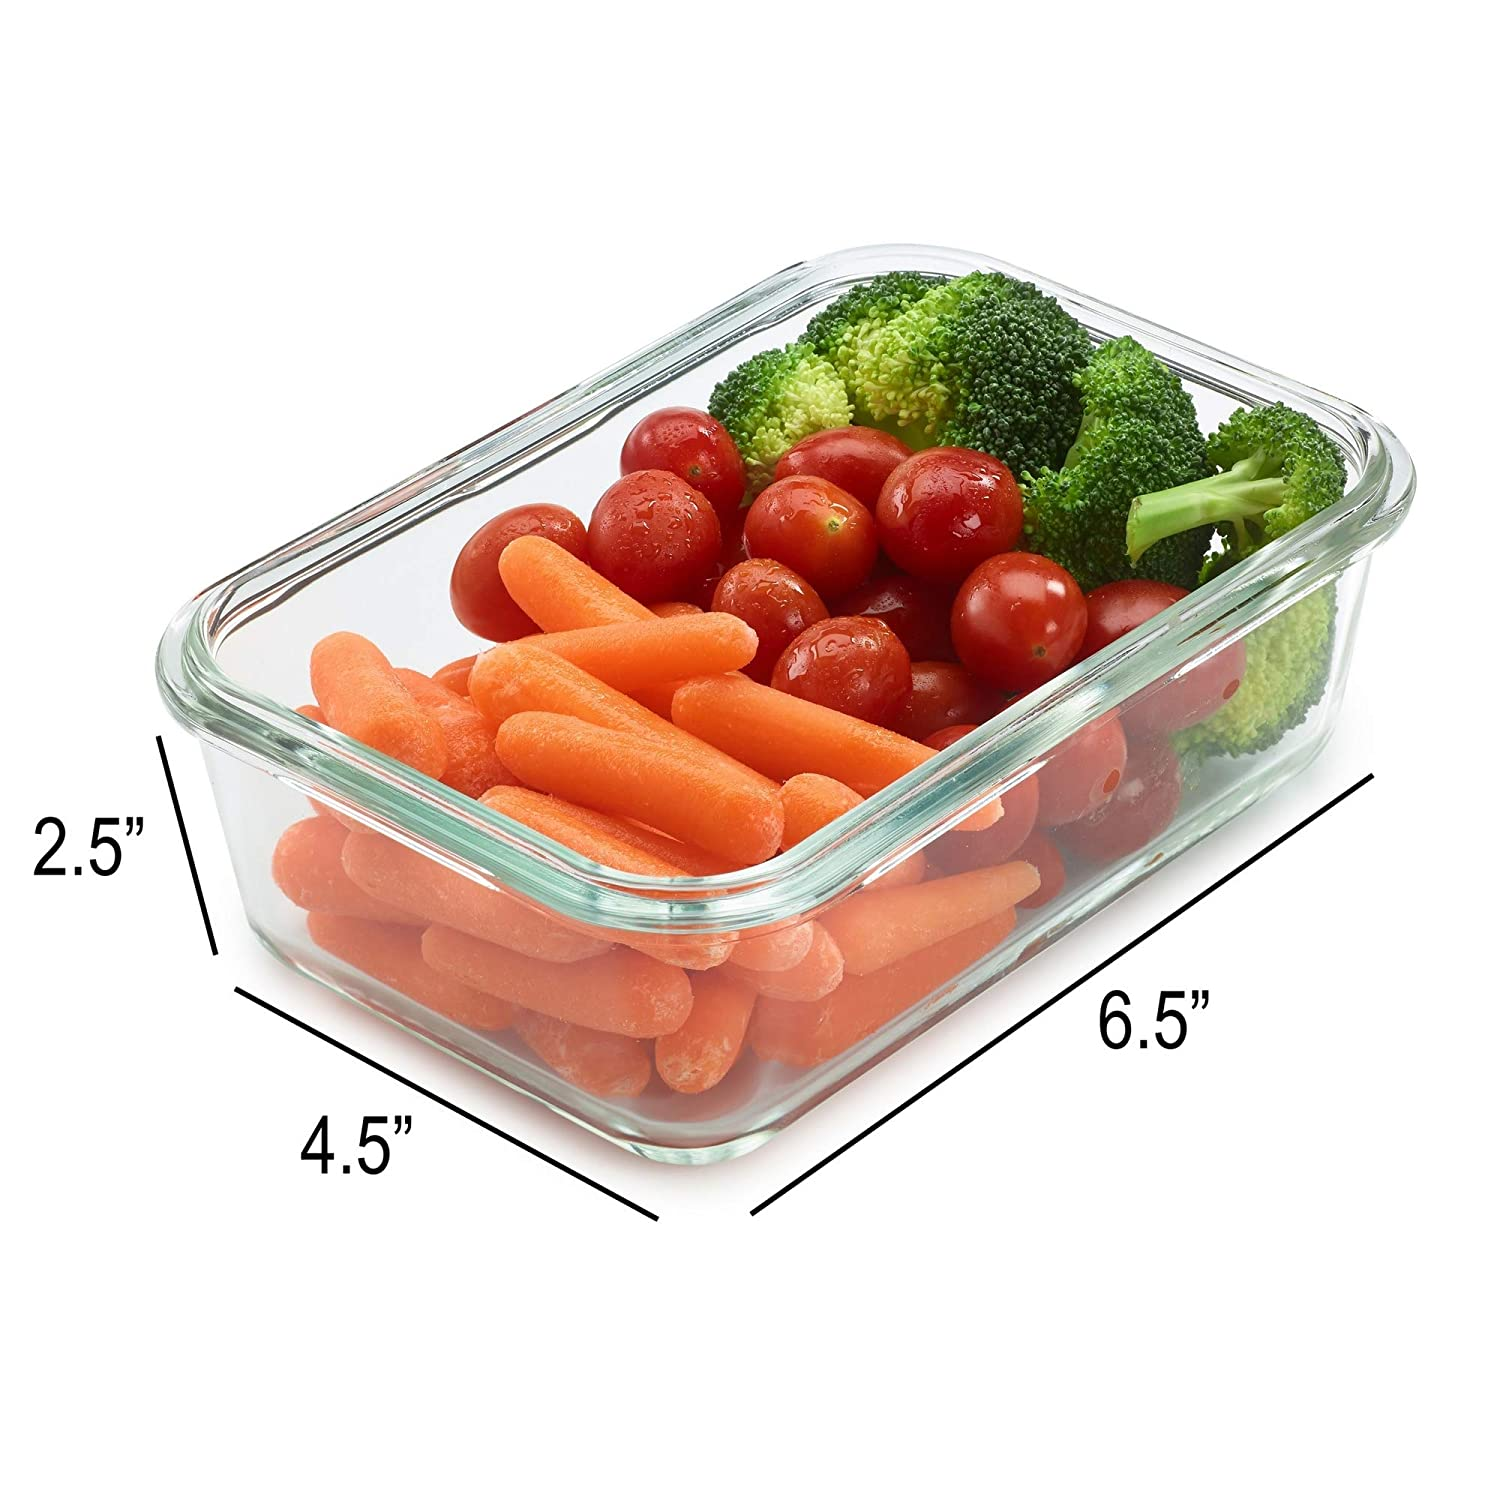 UberChef Professional Glass Meal Prep Containers - 8 Pack Glass Lunch Containers with Lids - Leak Resistant BPA Free Lids - Perfect Meal Prep Container - Simple Food Prep Containers